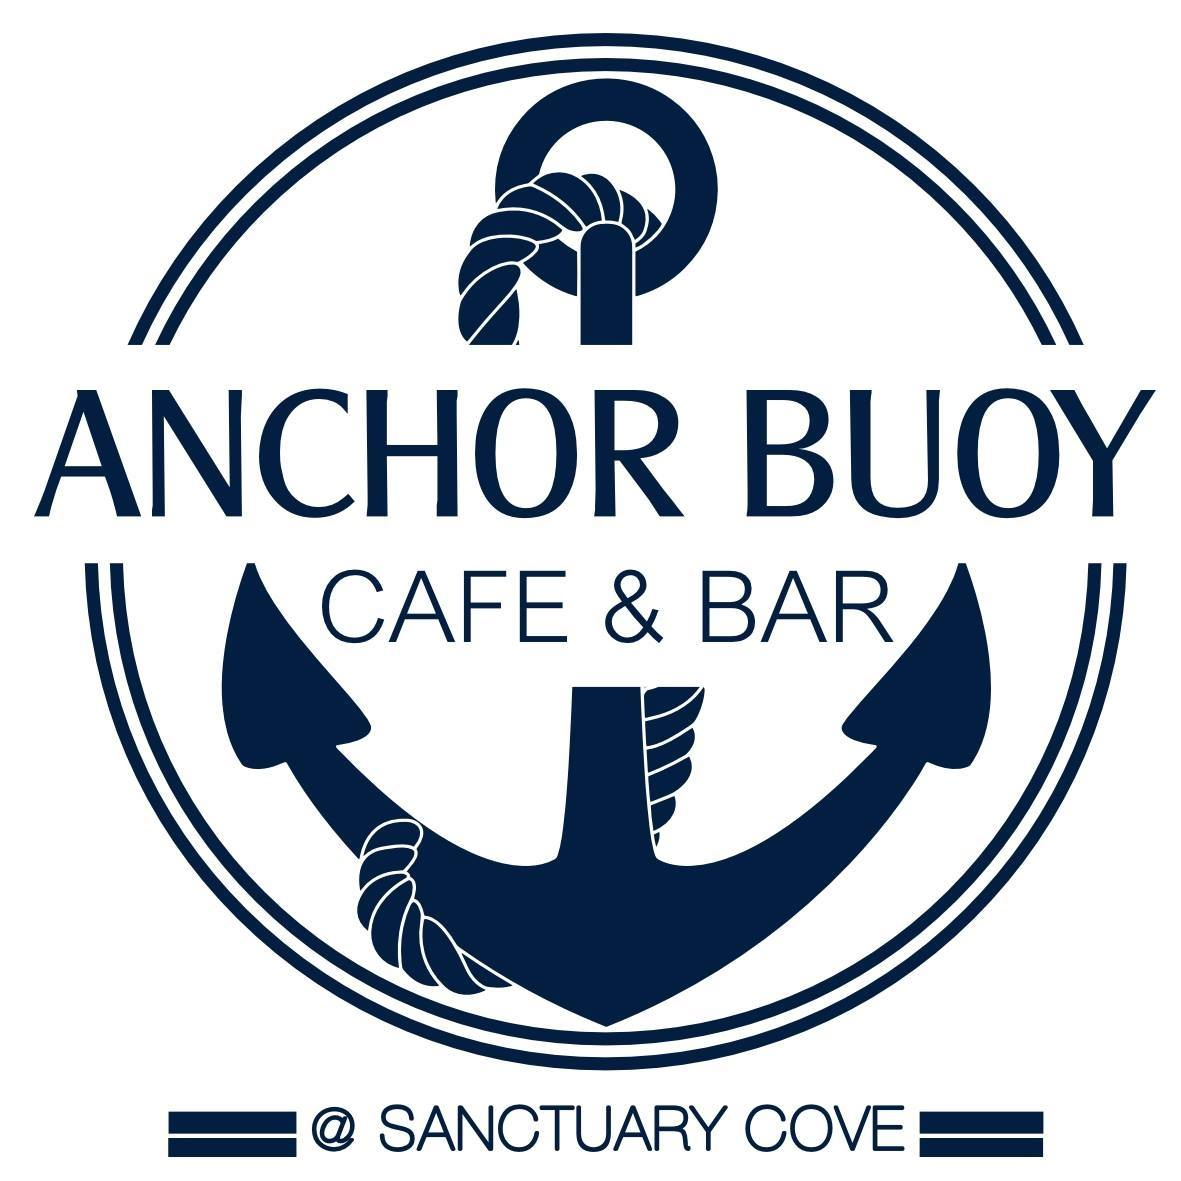 Anchor Buoy cafe and bar